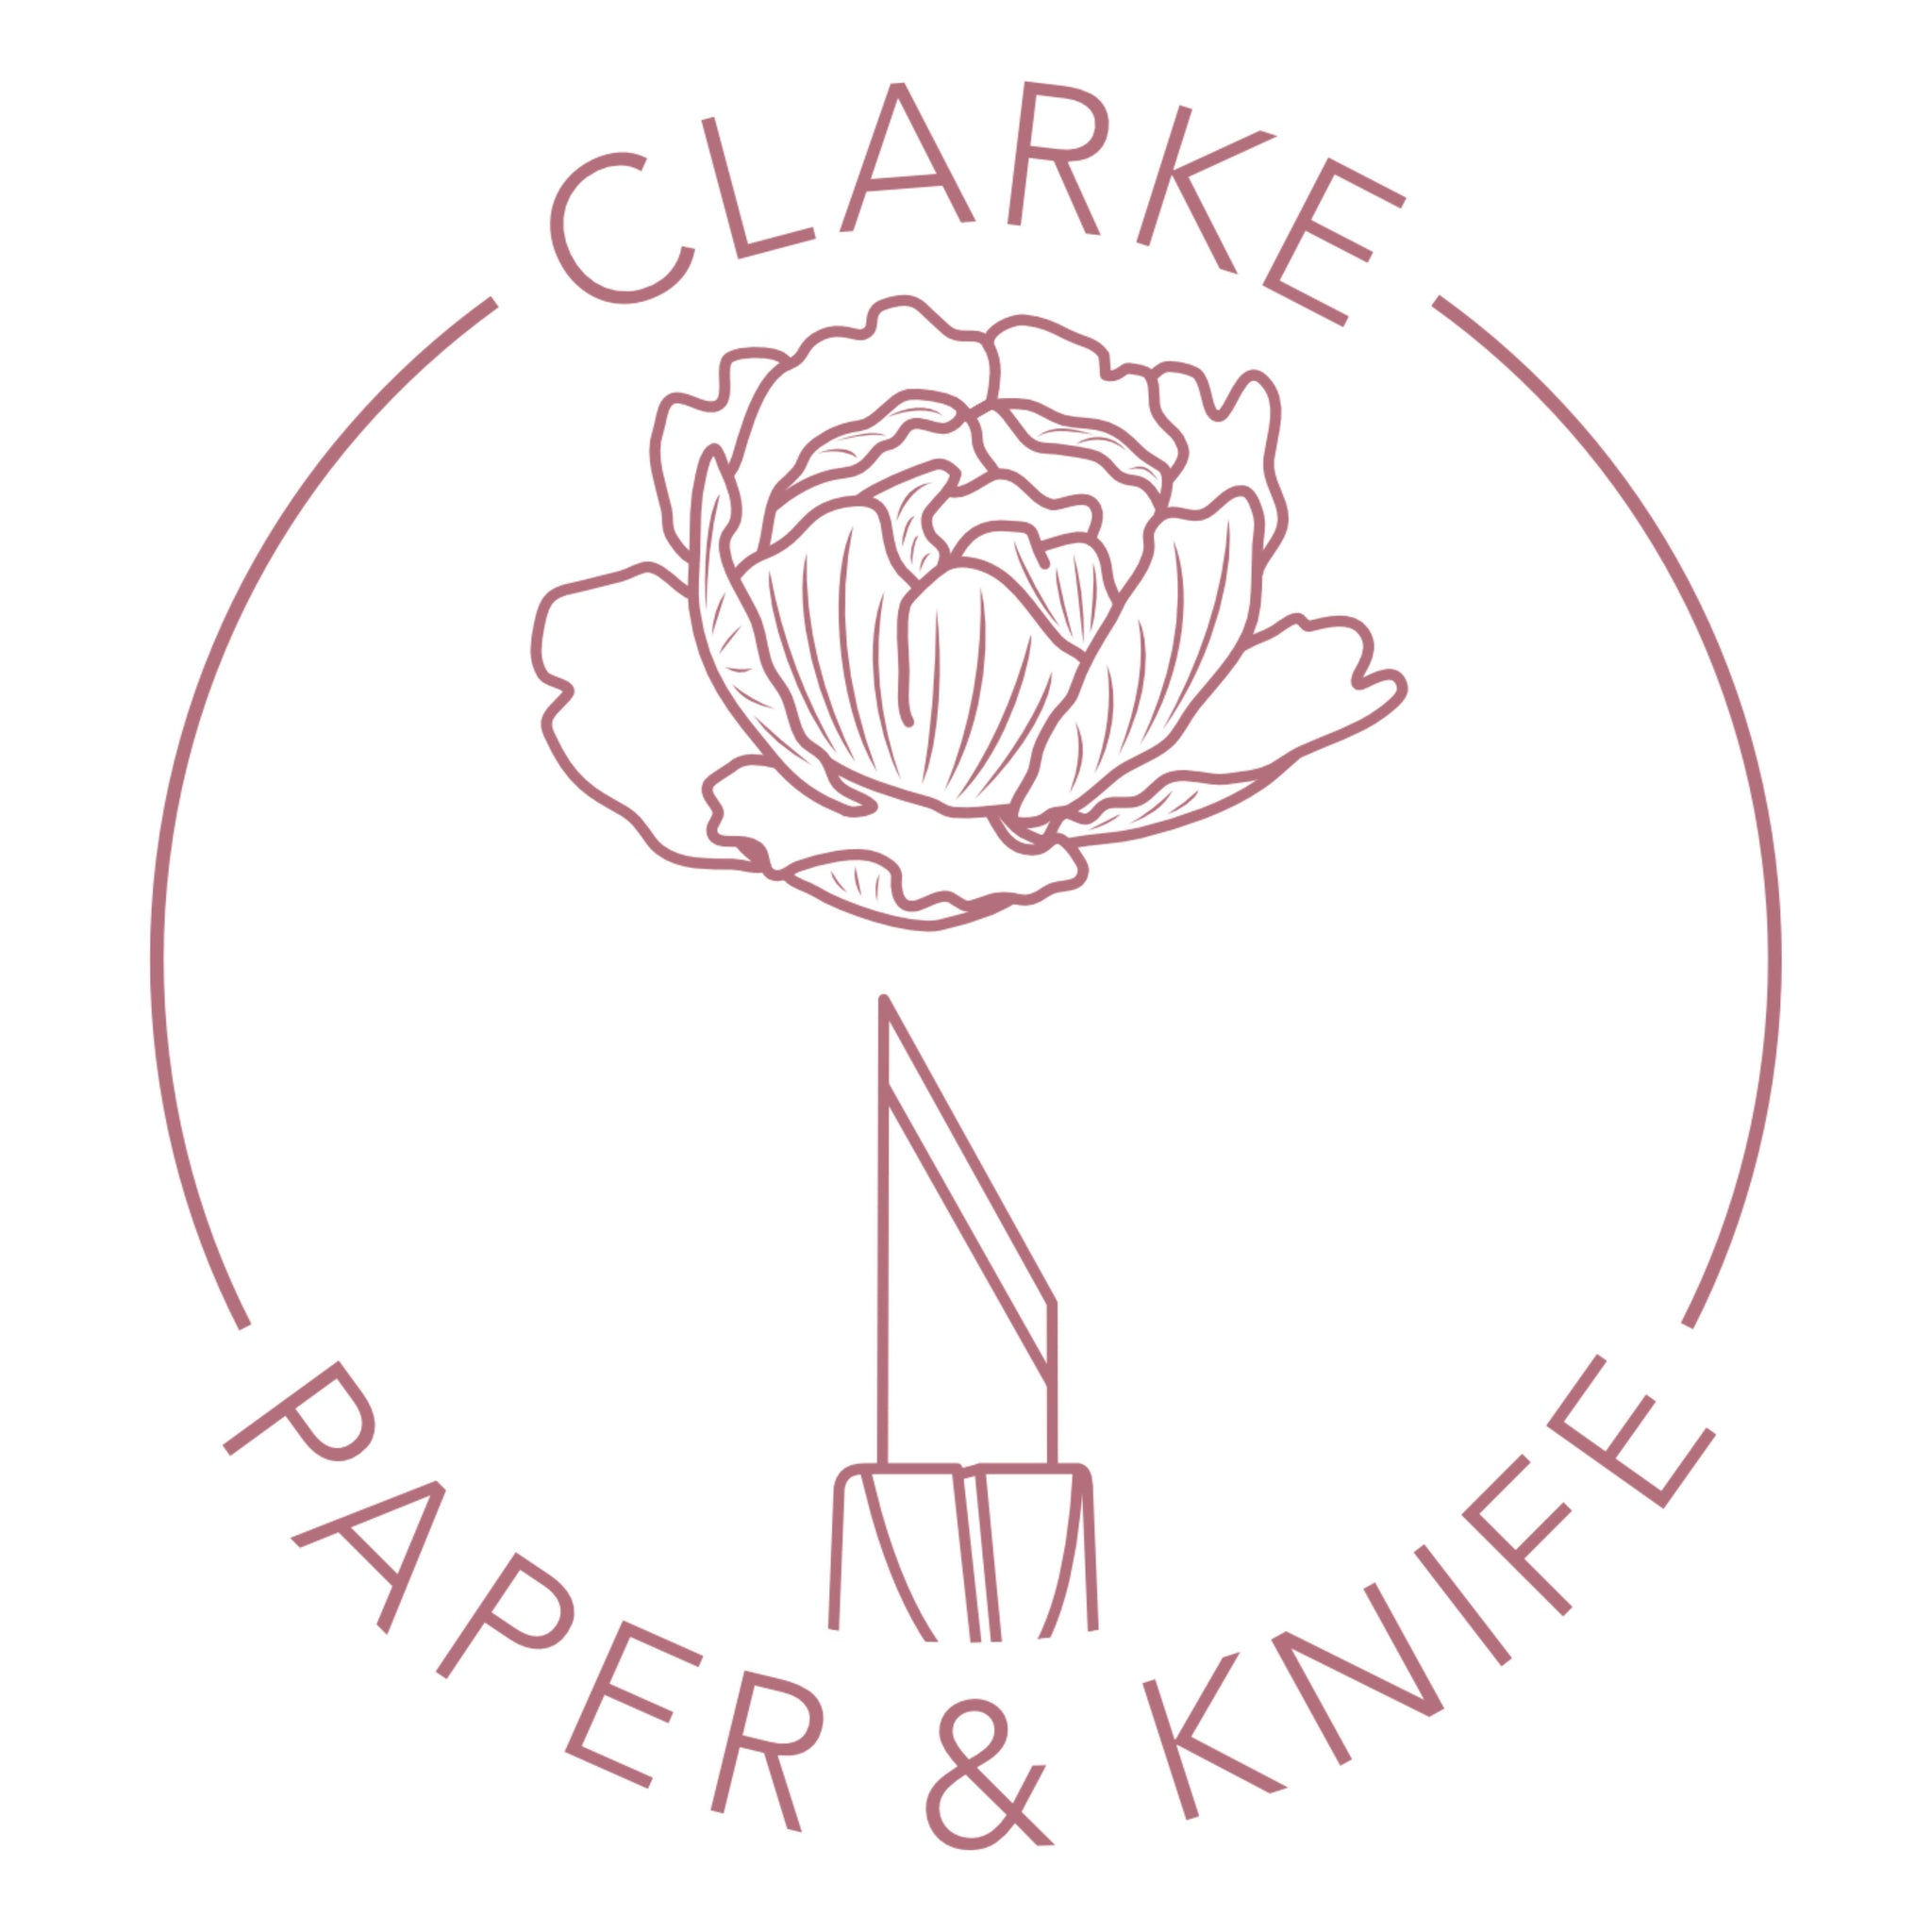 Clarke Paper and Knife | 007-1103